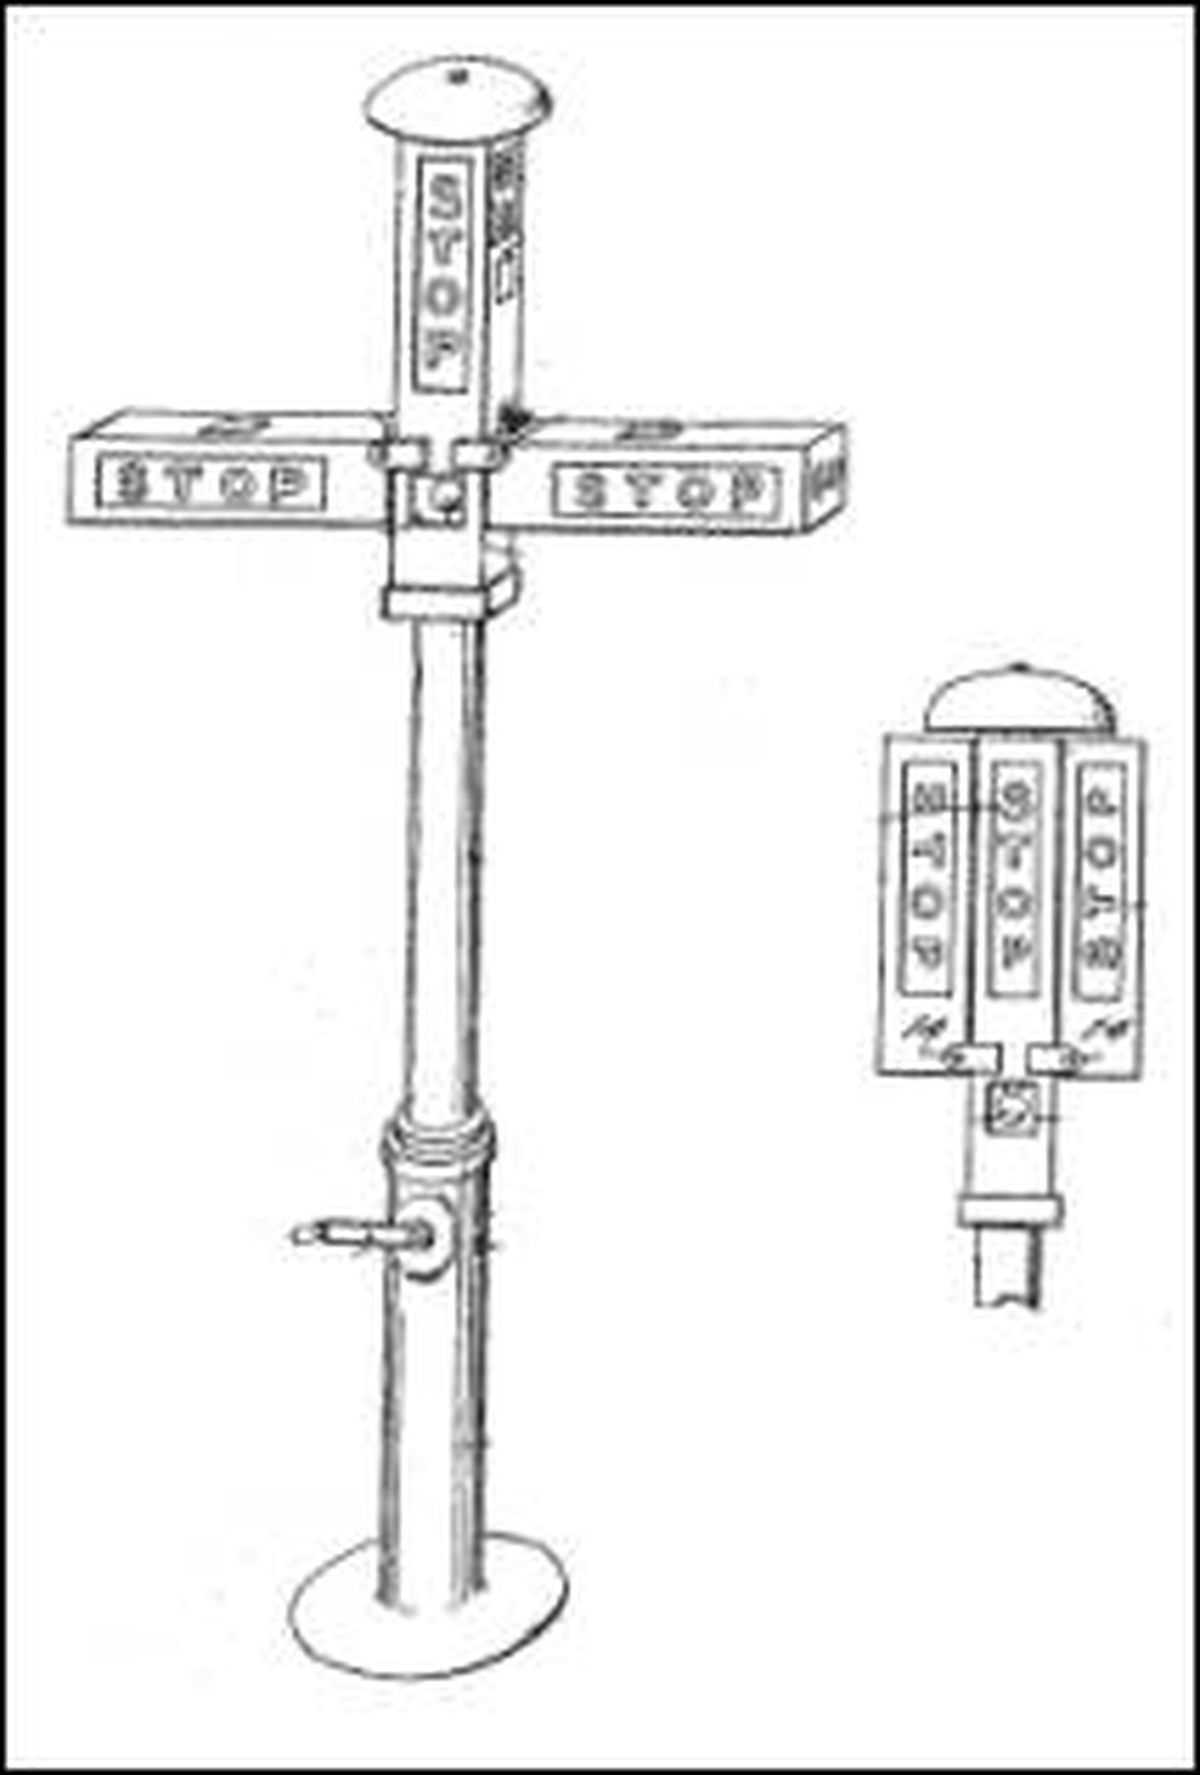 When Was The First Traffic Light Installed Today In